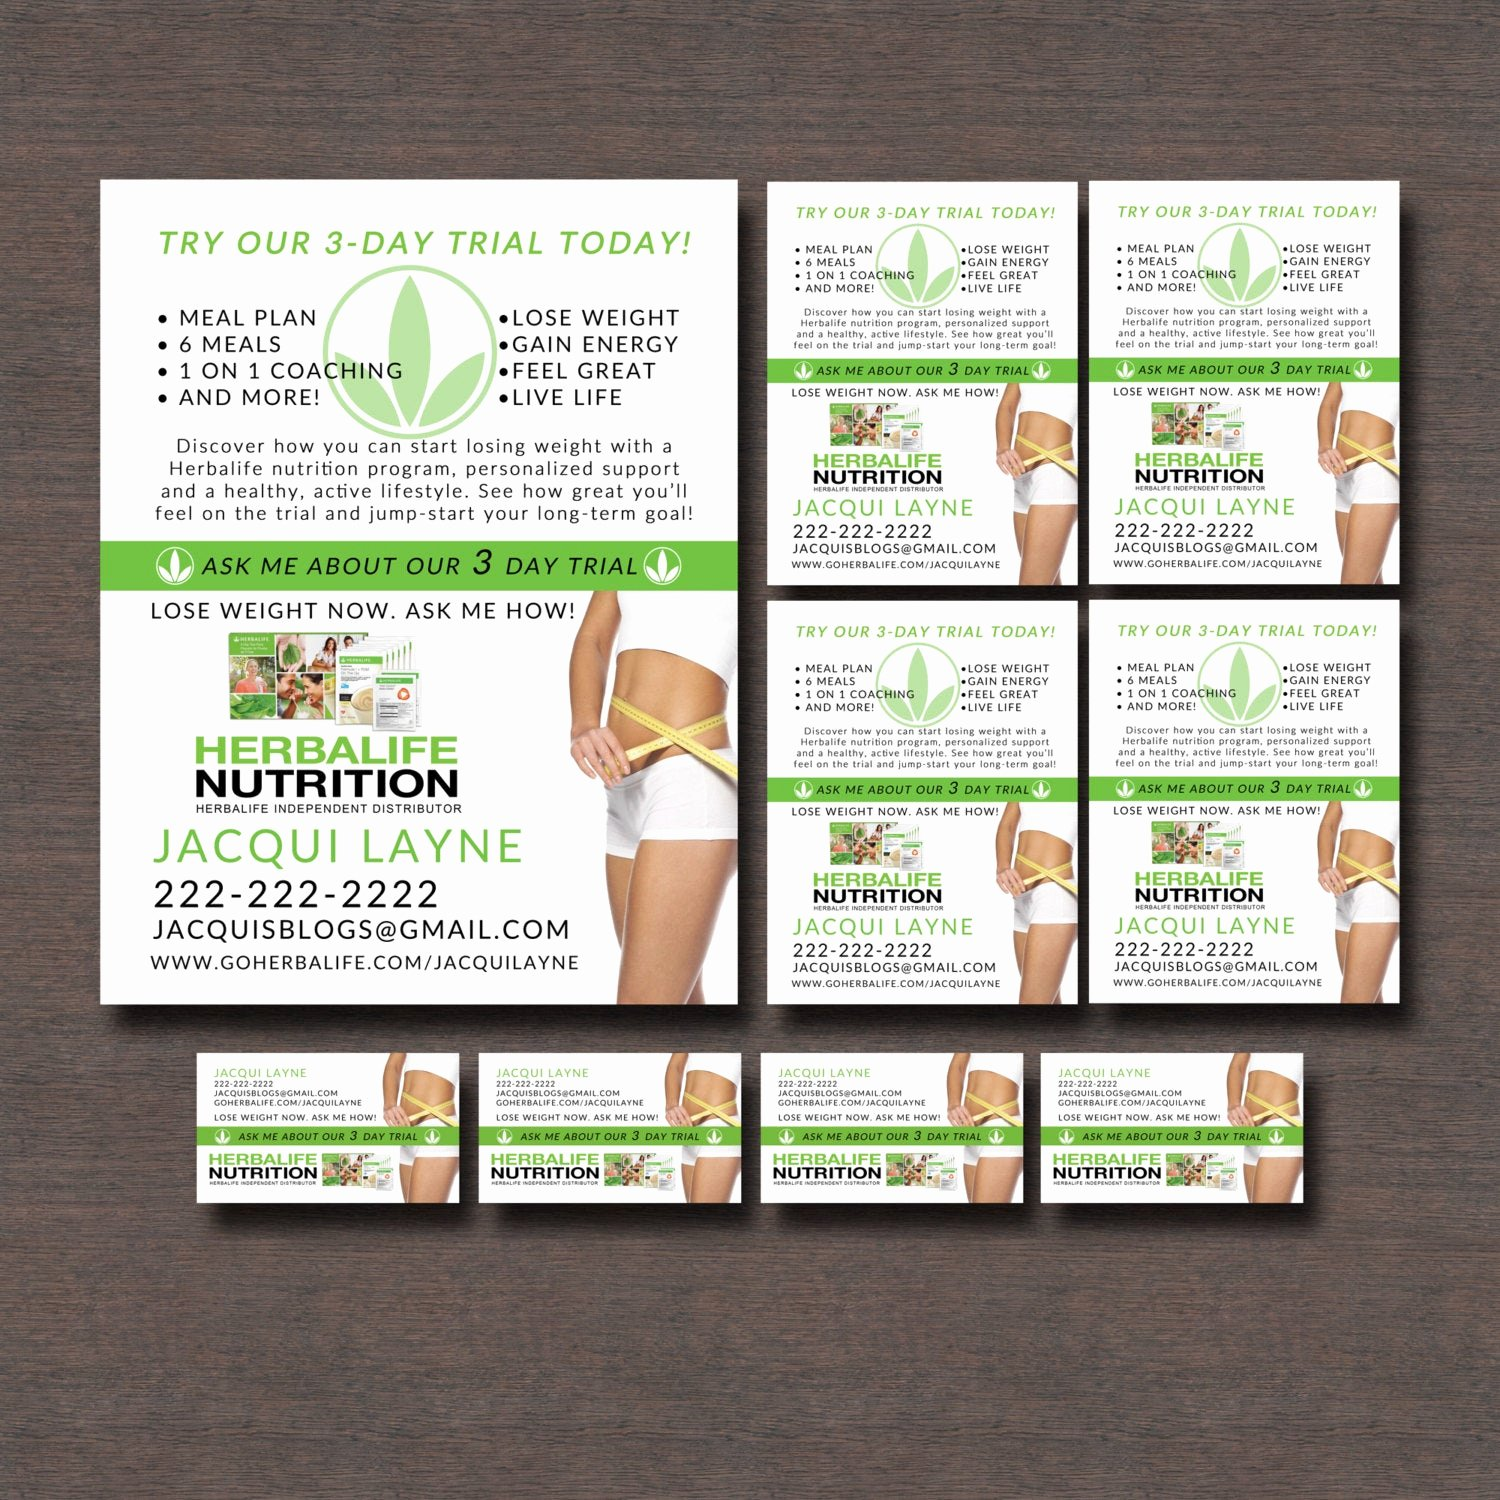 Herbalife Flyer Templates Awesome Herbalife 3 Day Trial Flyers and Business by